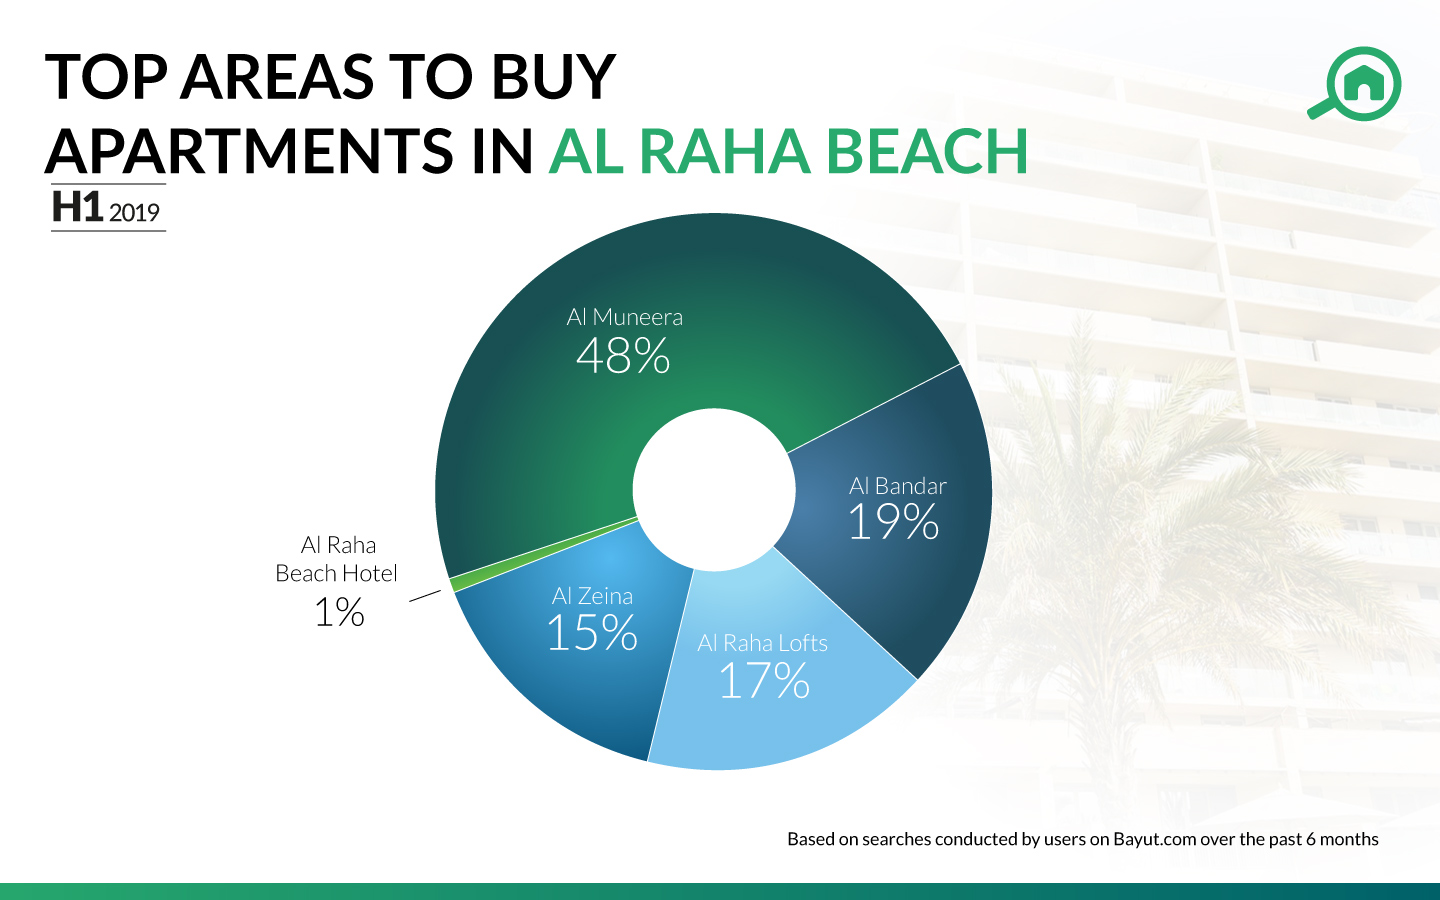 Pie chart showing the most popular areas with apartments for sale in Al Raha Beach